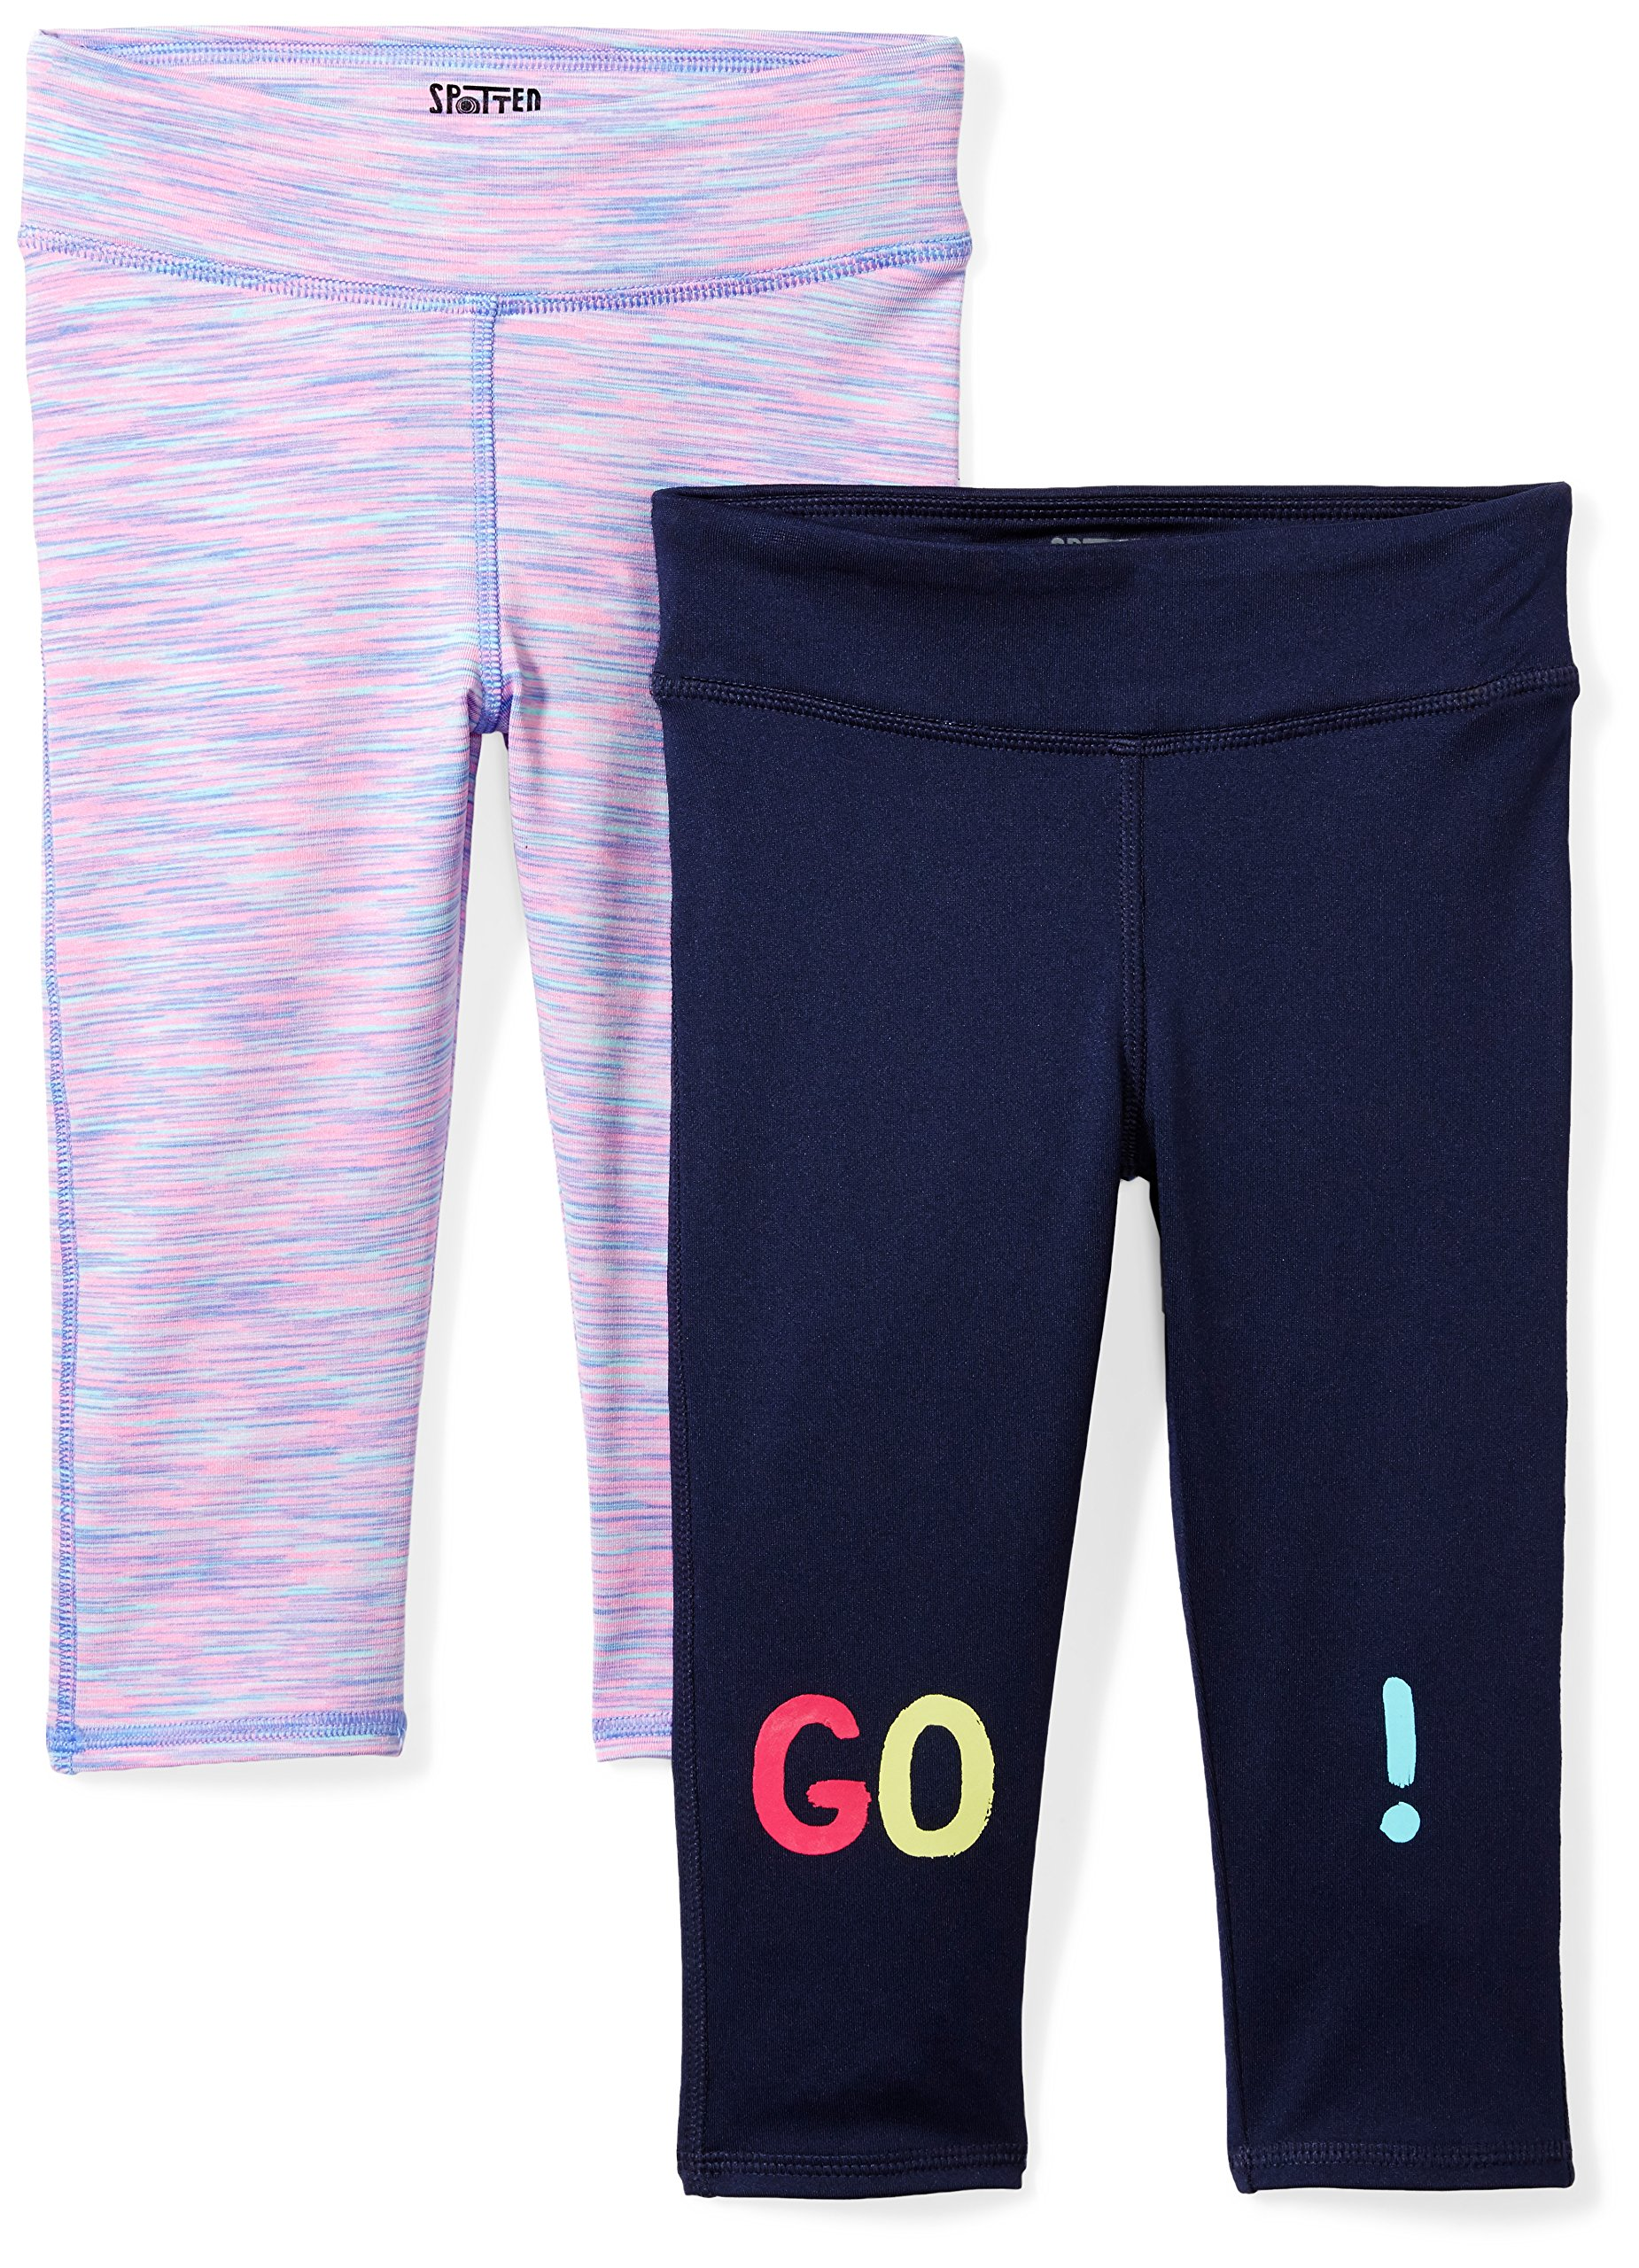 Amazon Brand - Spotted Zebra Girls' Big Kid 2-Pack Active Capri Legging, Go!, XX-Large (14)